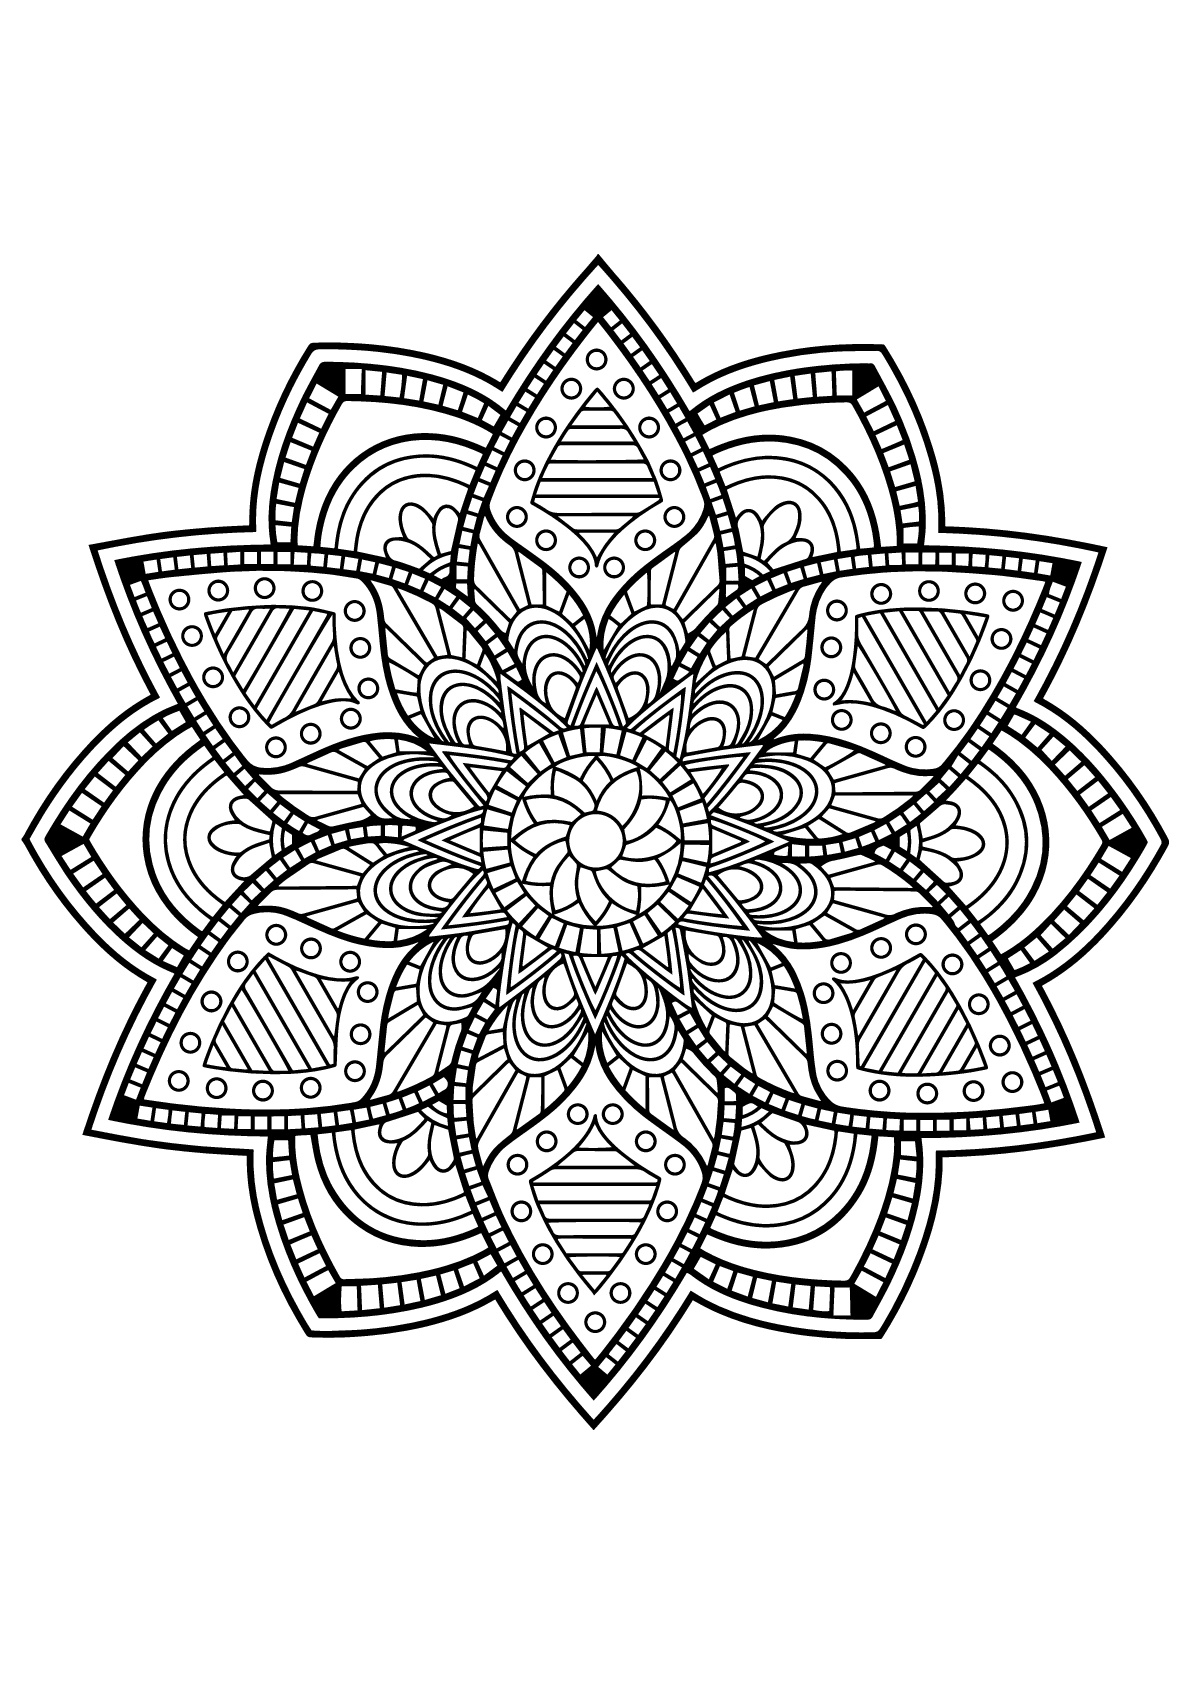 mandalas to color for adults simple mandalas malas adult coloring pages color adults to mandalas for